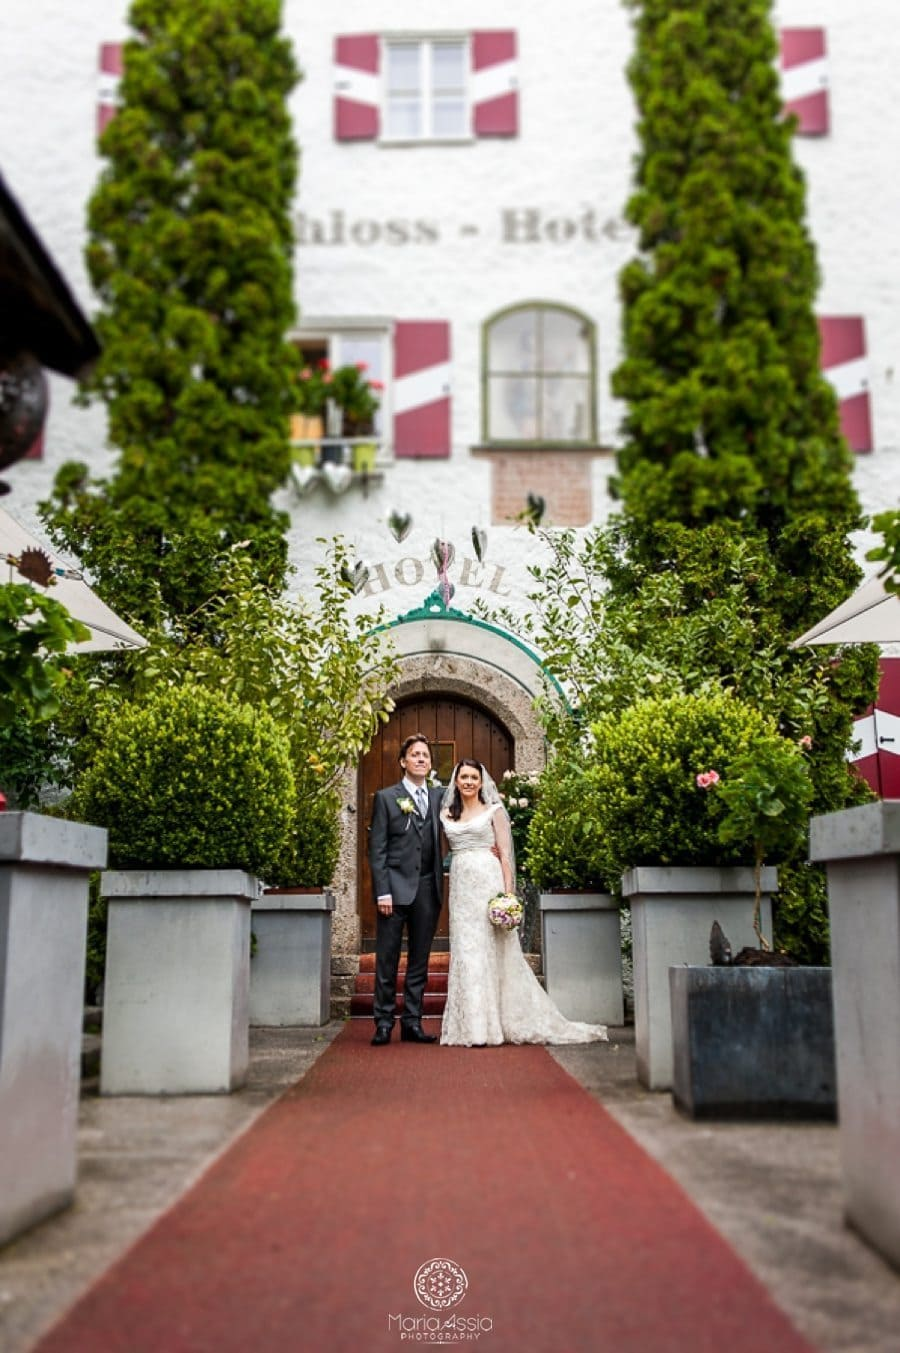 Bride and Groom at Iglhauser Hotel Mattsee Austria